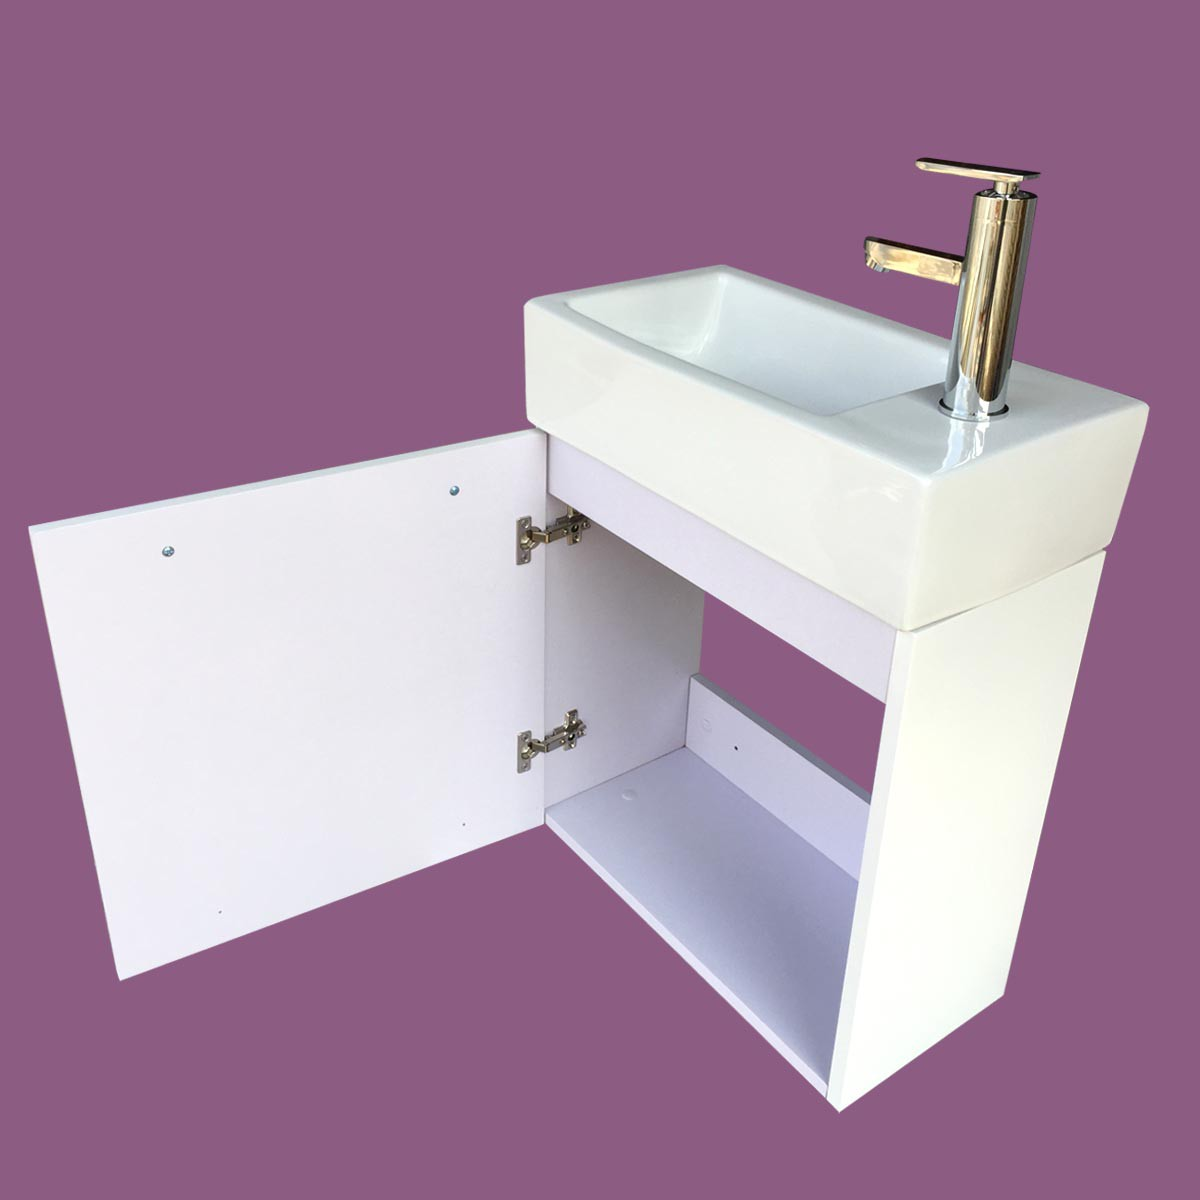 Bathroom Cabinet Vanity Wall Mount EBay